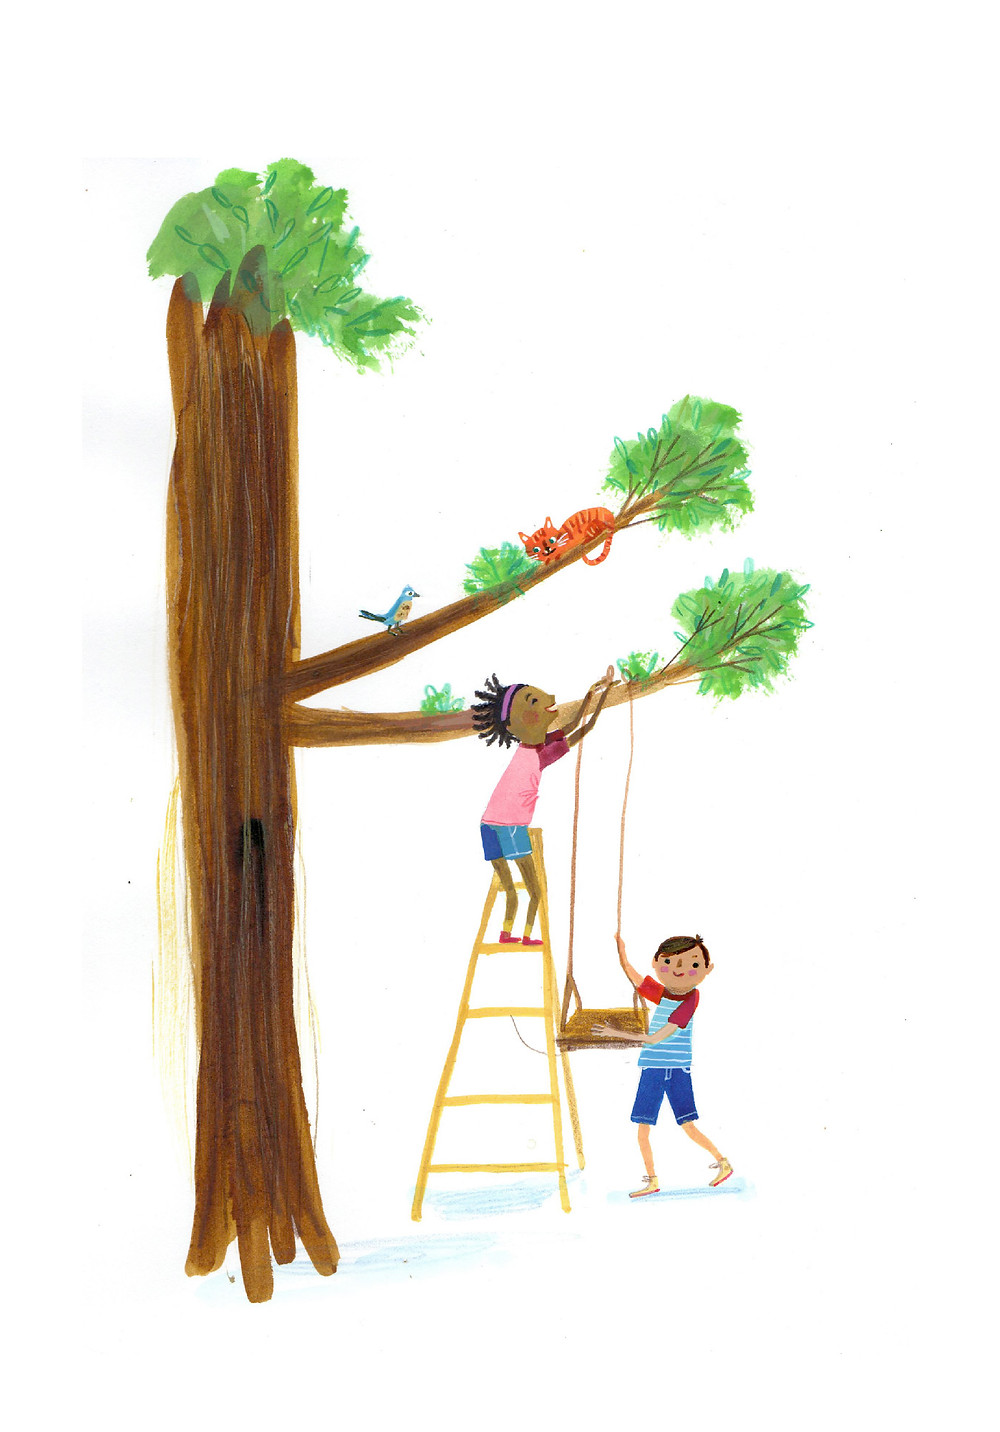 Alec and his friend Rosa are putting up a tree swing.